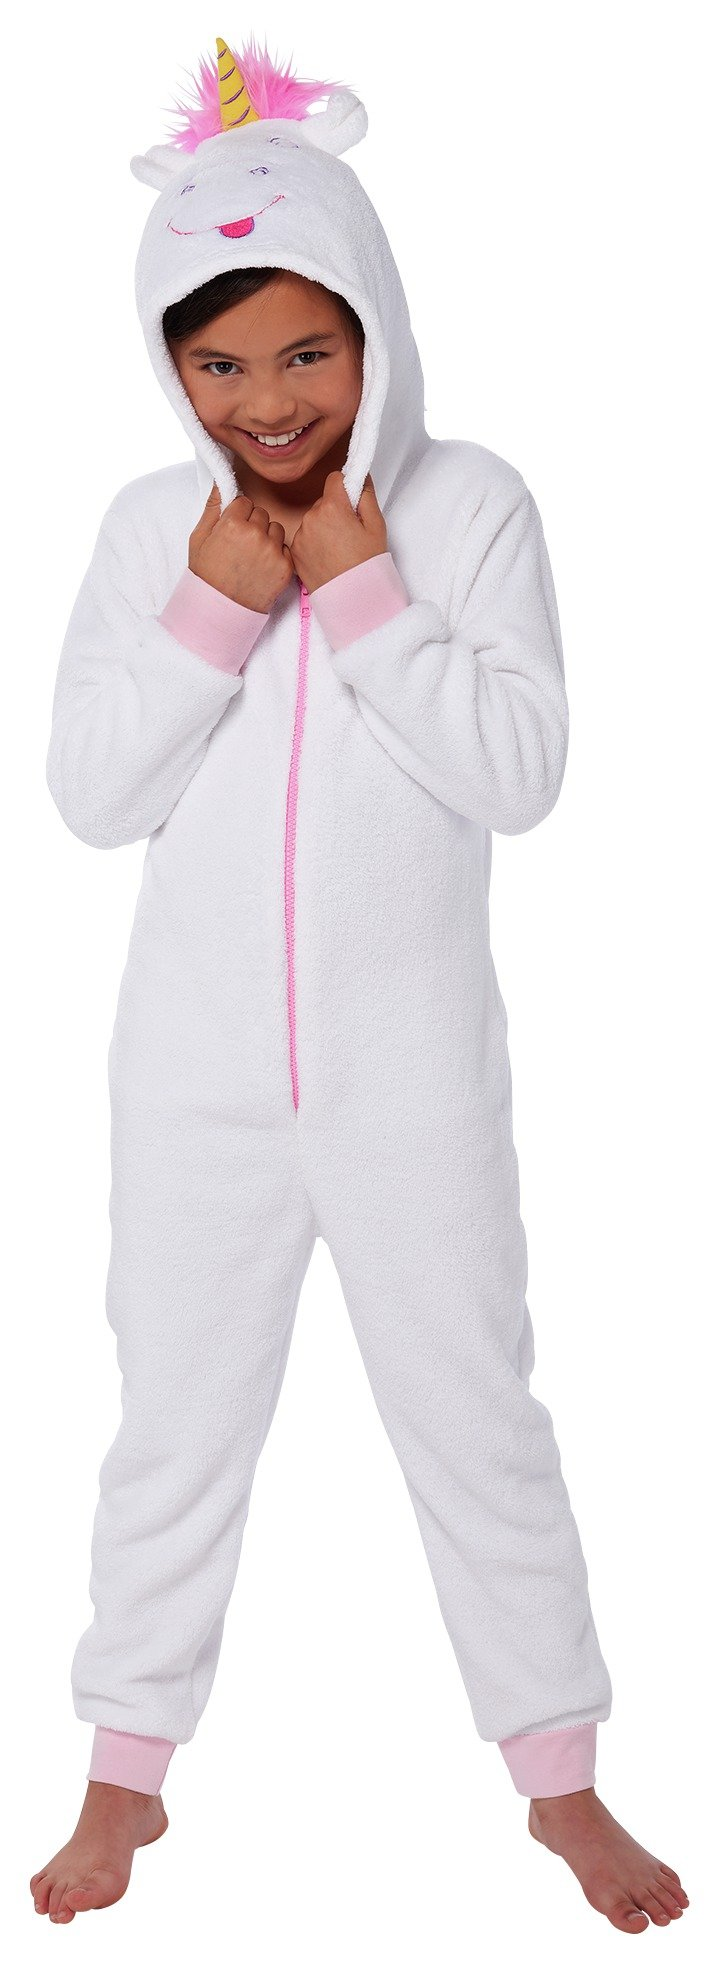 Image of Minions Fluffy Onesie - 5-6 Years